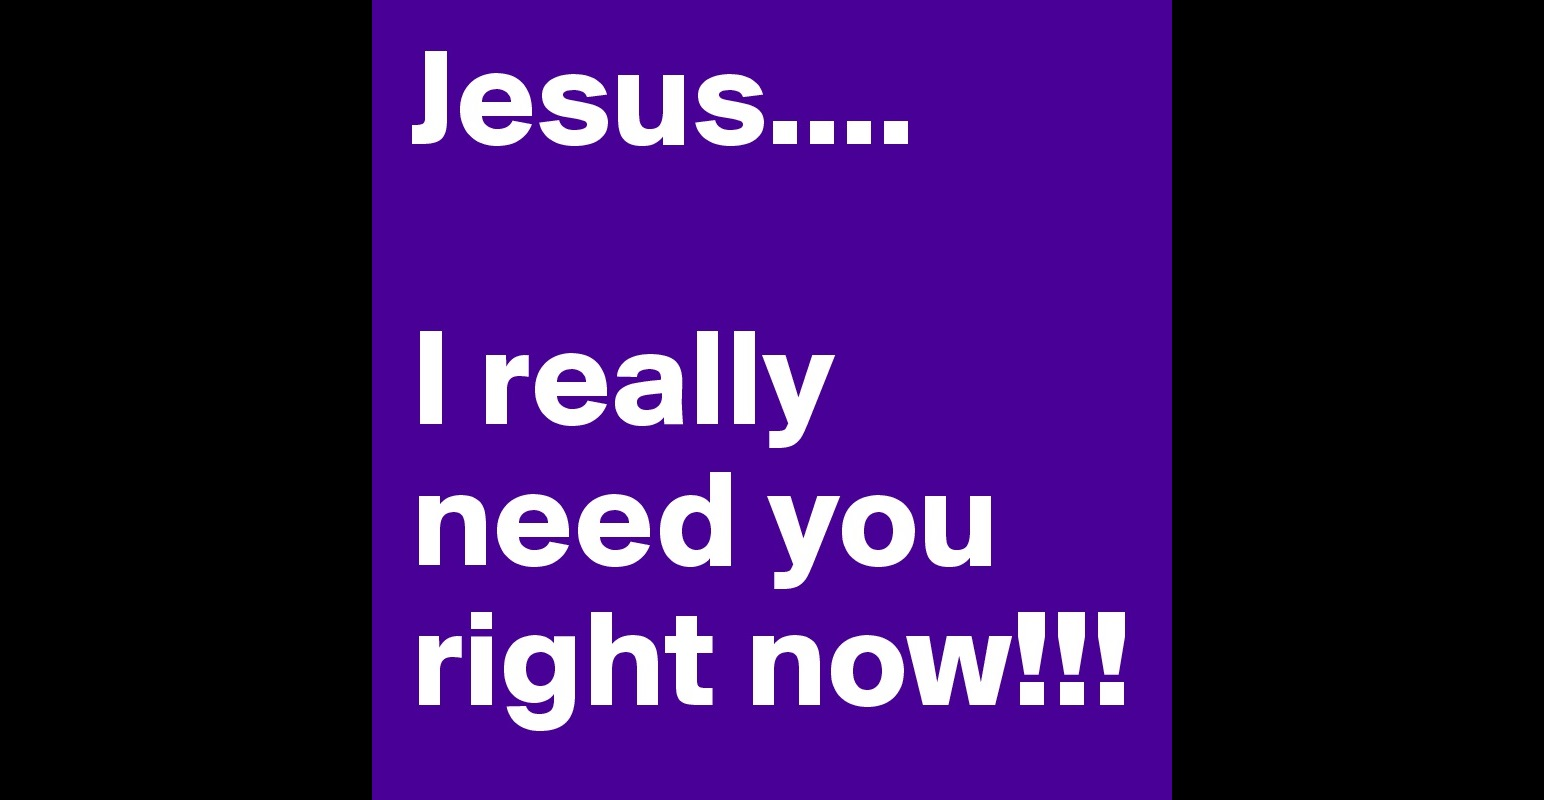 Jesus i really need you right now post by cobi07 on